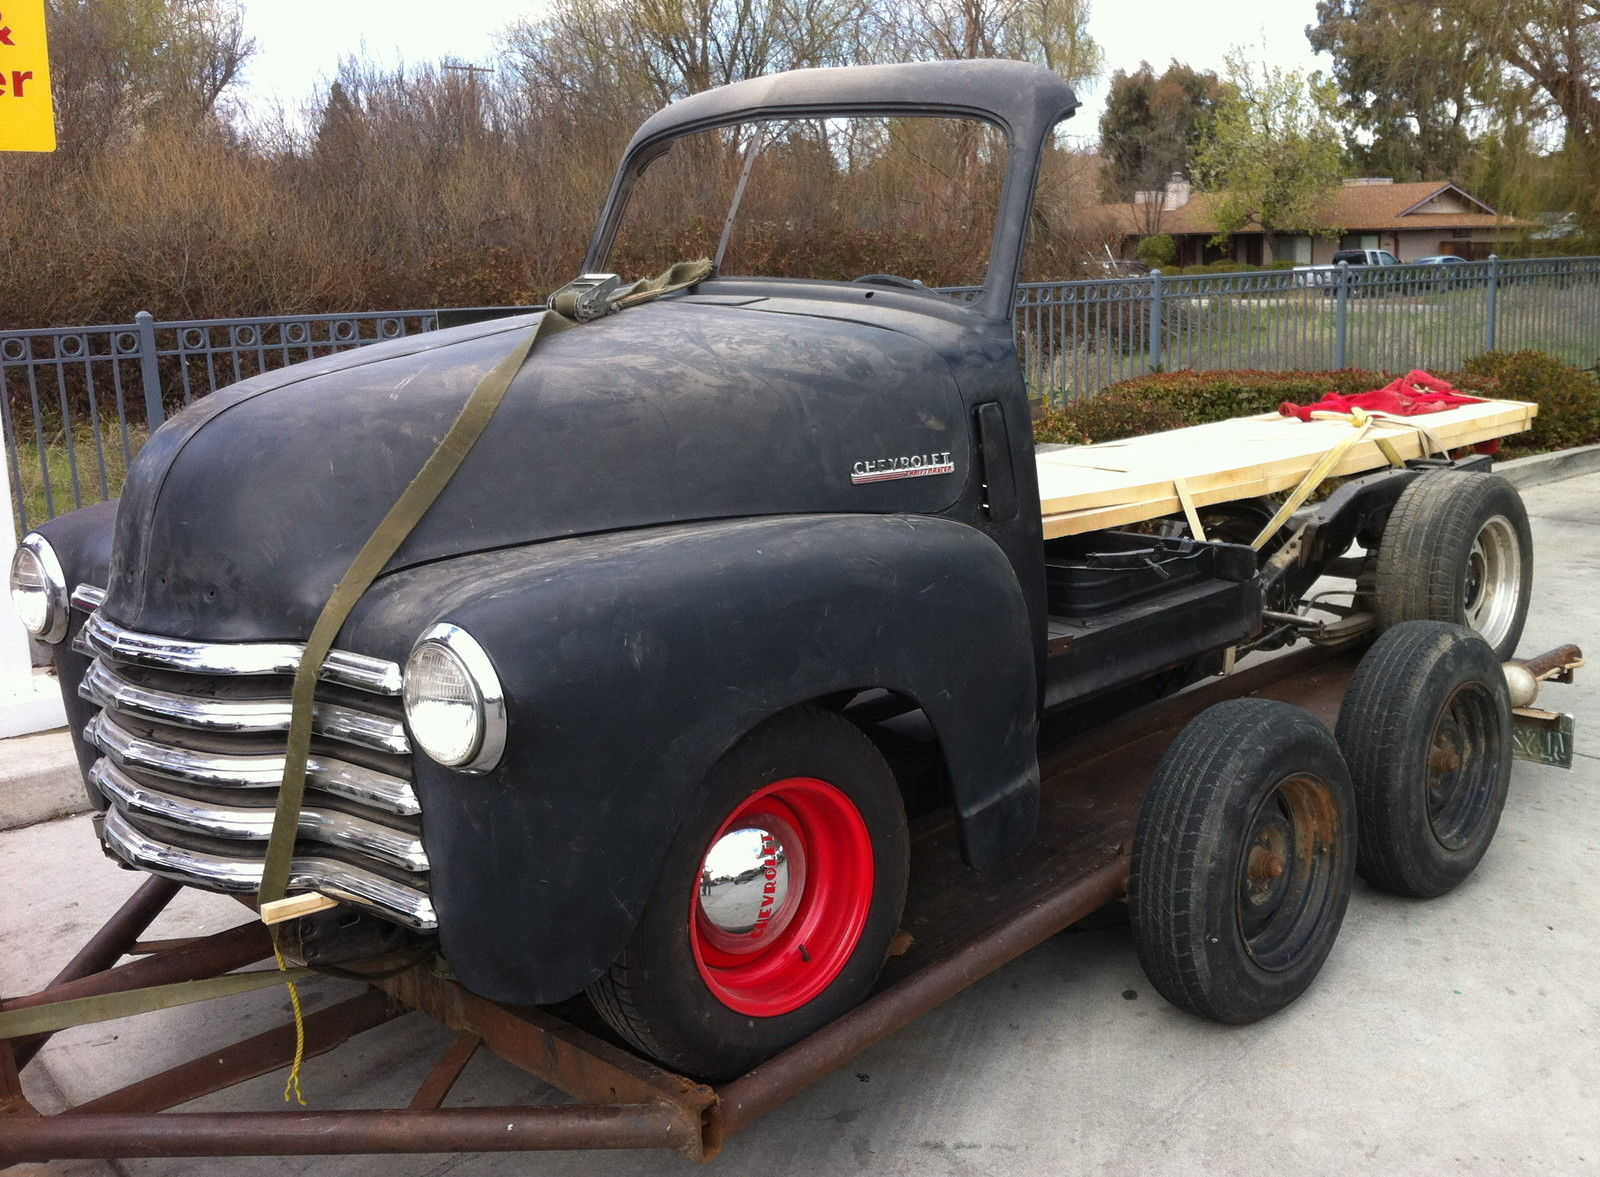 1951 Chevrolet Truck Woody Project On S10 Frame 1947 1948 1949 1950 1952 Woodie For Sale In Buellton California United States For Sale Photos Technical Specifications Description